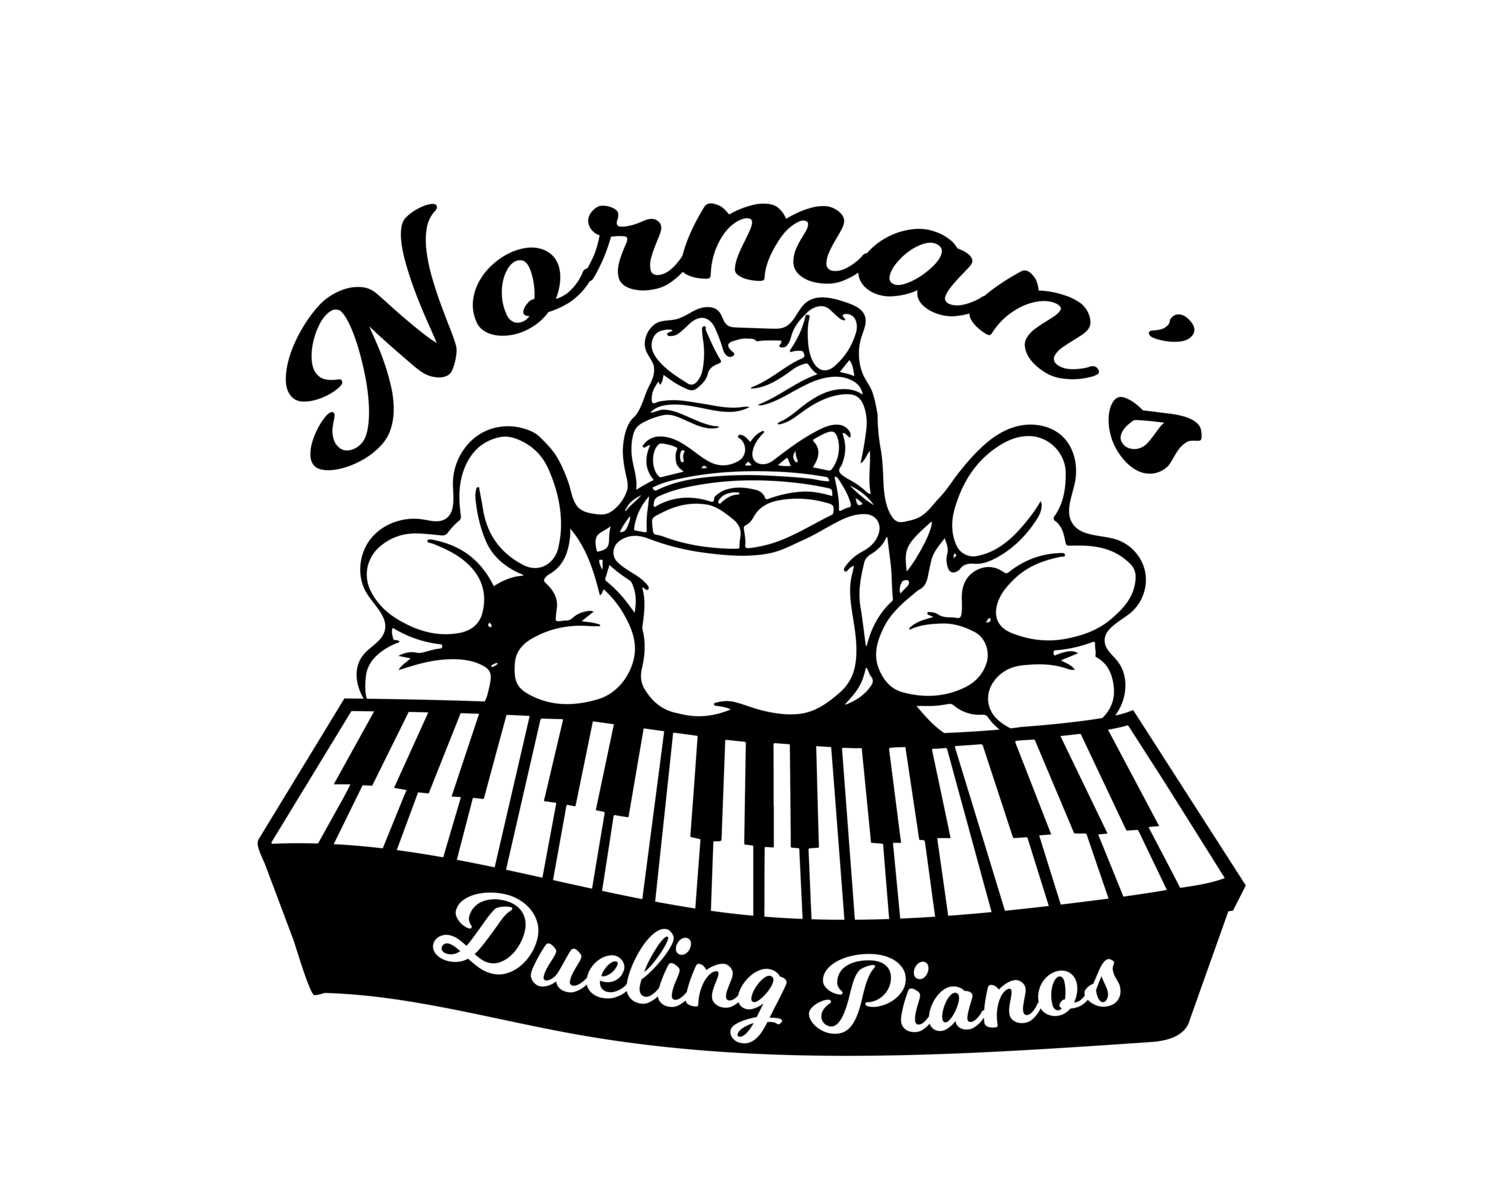 Piano clipart dueling pianos. Norman s bar